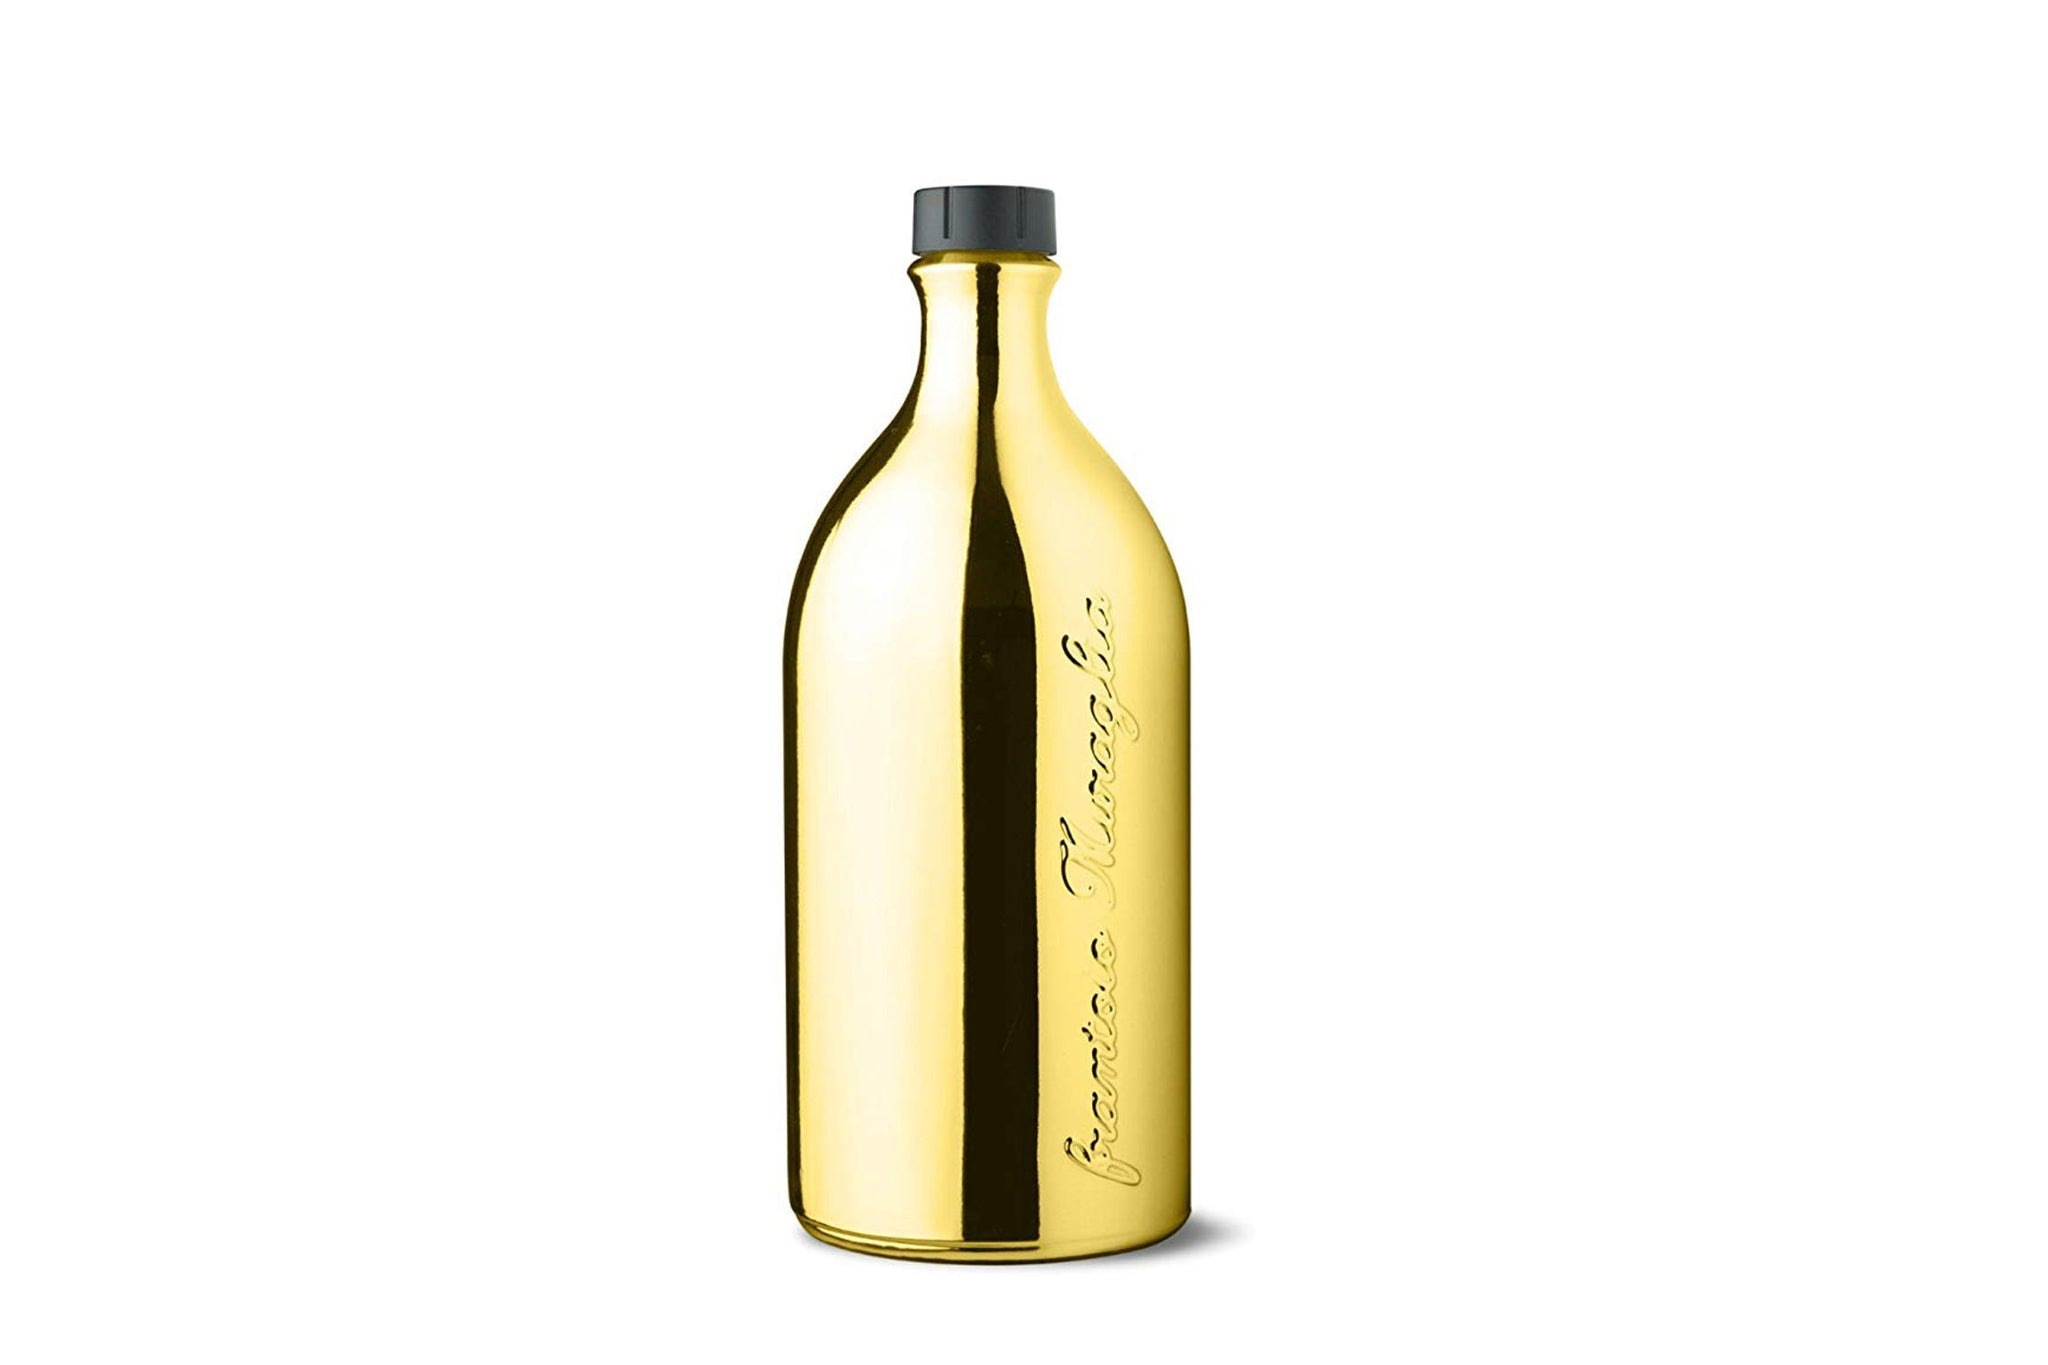 Frantoio Muraglia Gold Coolors Intense Fruity Extra Virgin Olive Oil 500ml